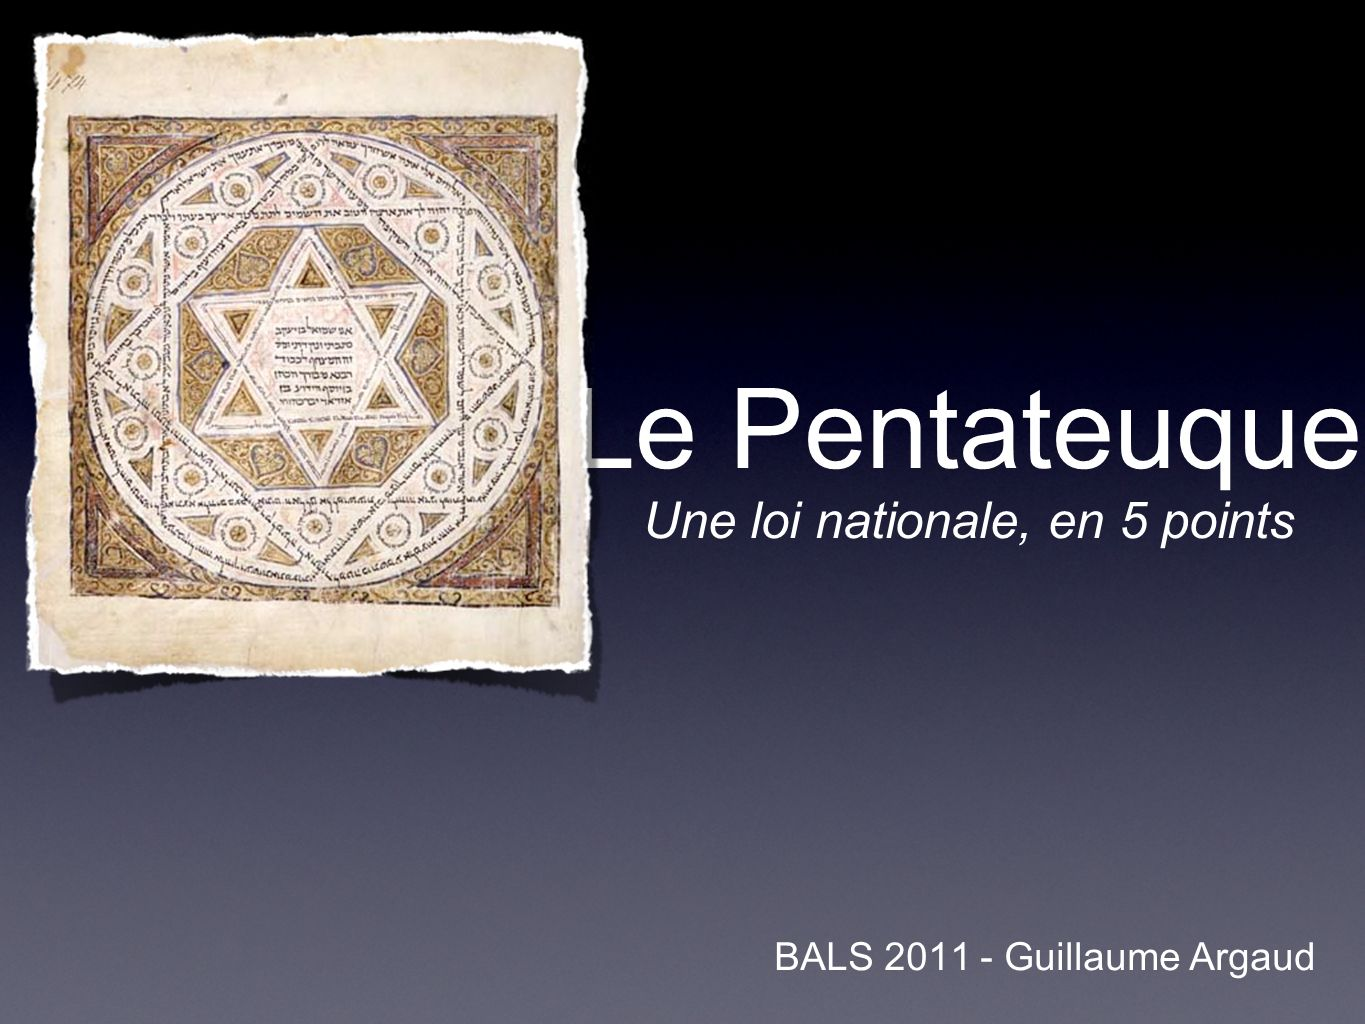 Une loi nationale, en 5 points